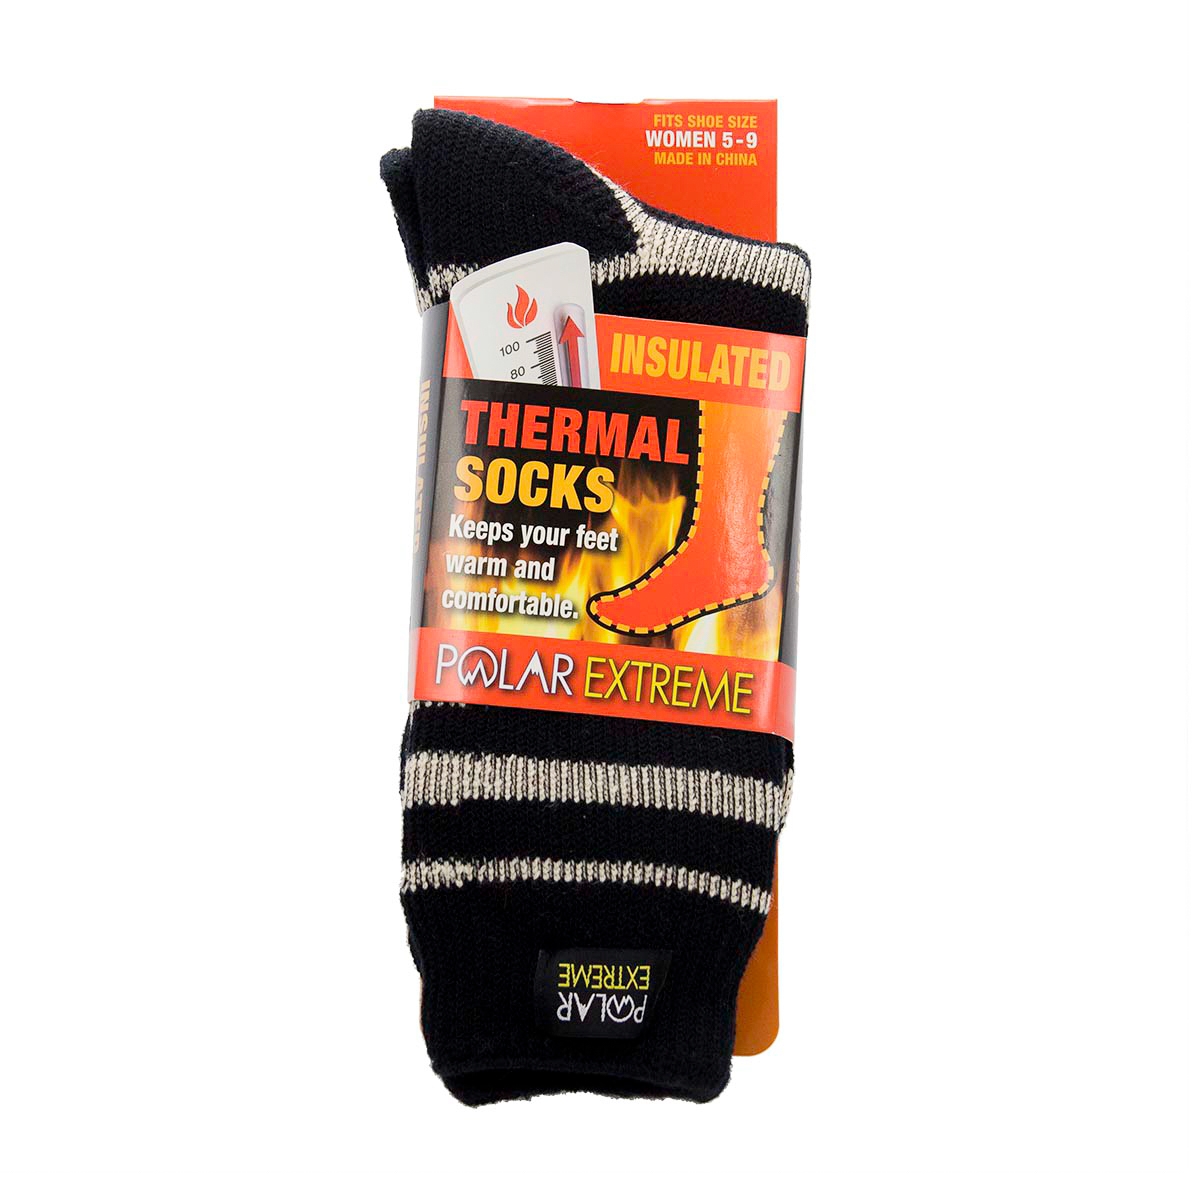 4-Pack Women s Polar Extreme Thermal Socks